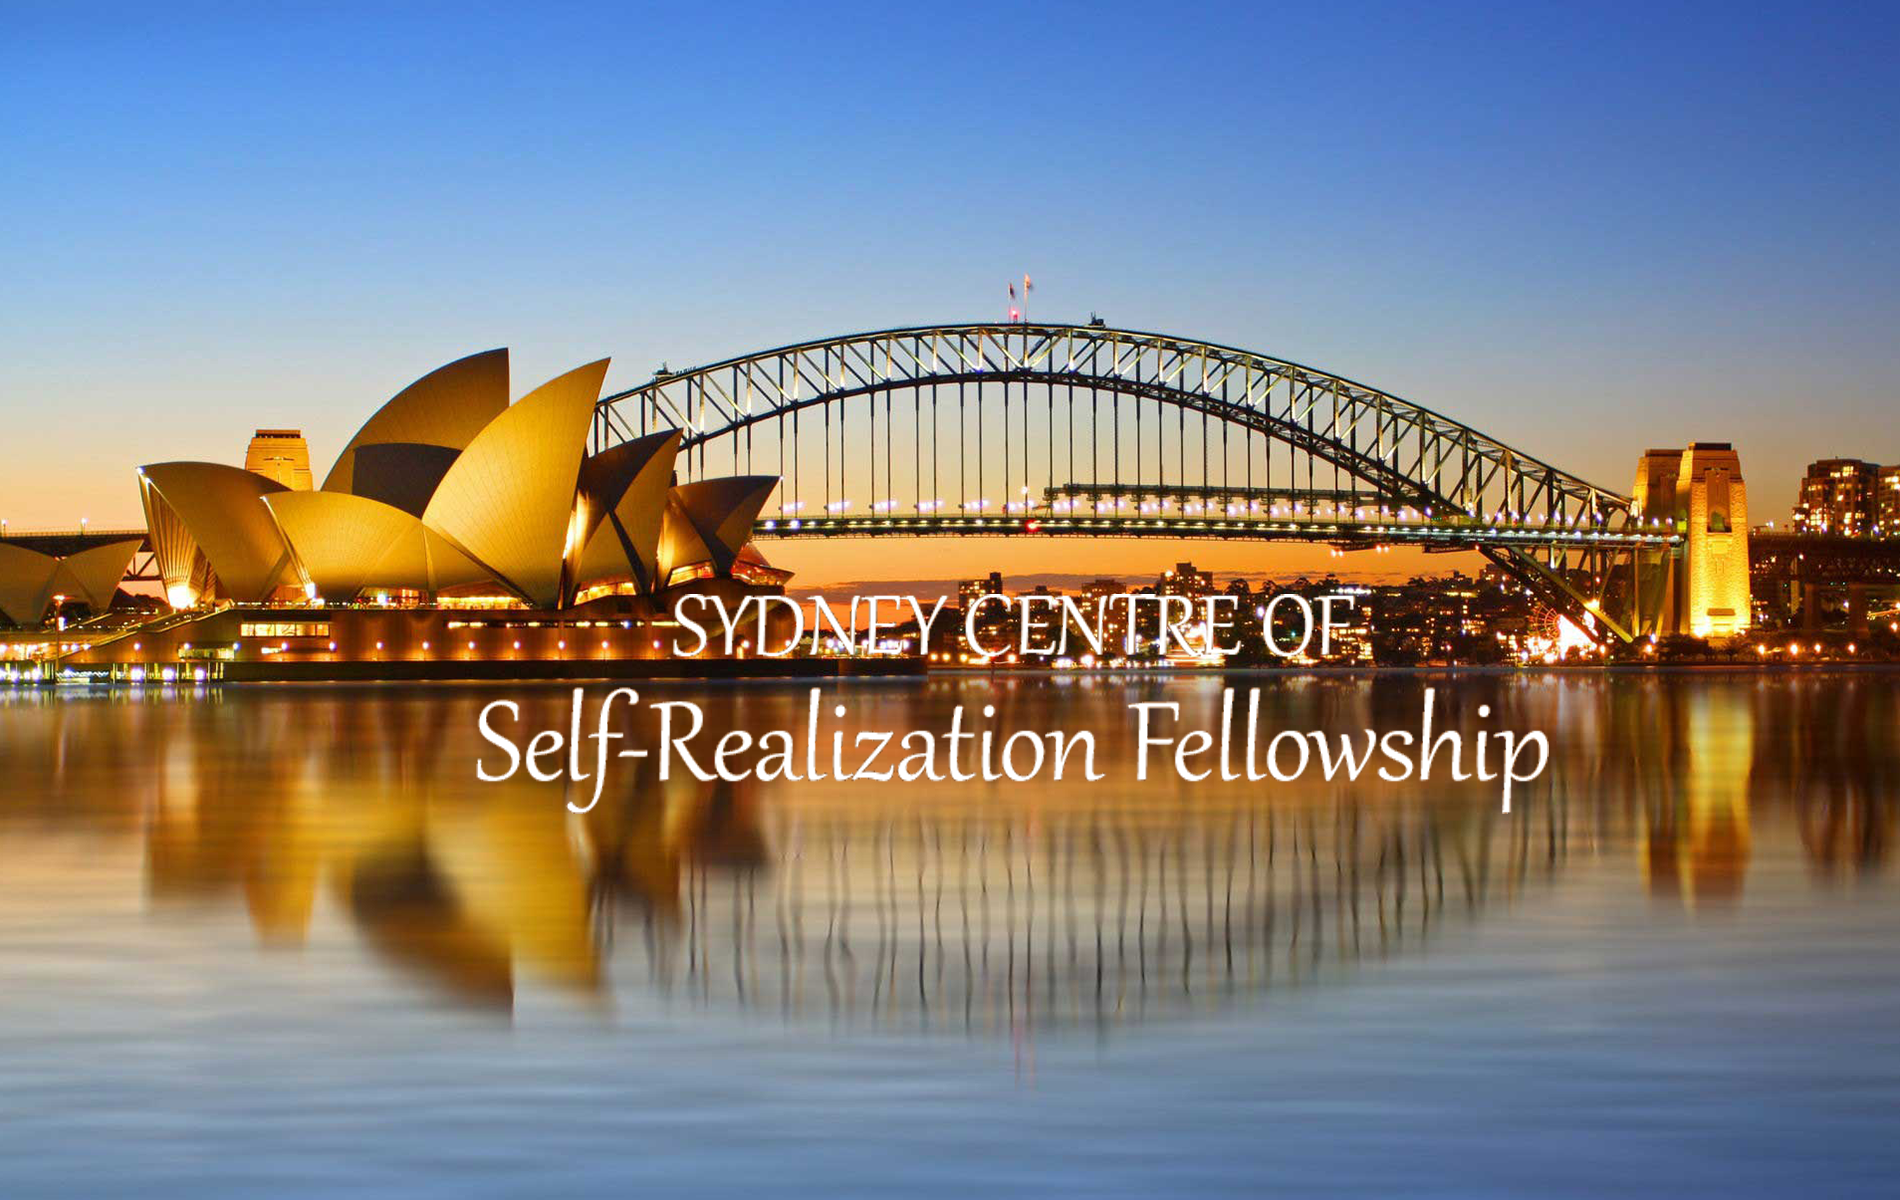 Sydney-centre-of-Self-Realization-Fellowship-Home-page-main-hero-image